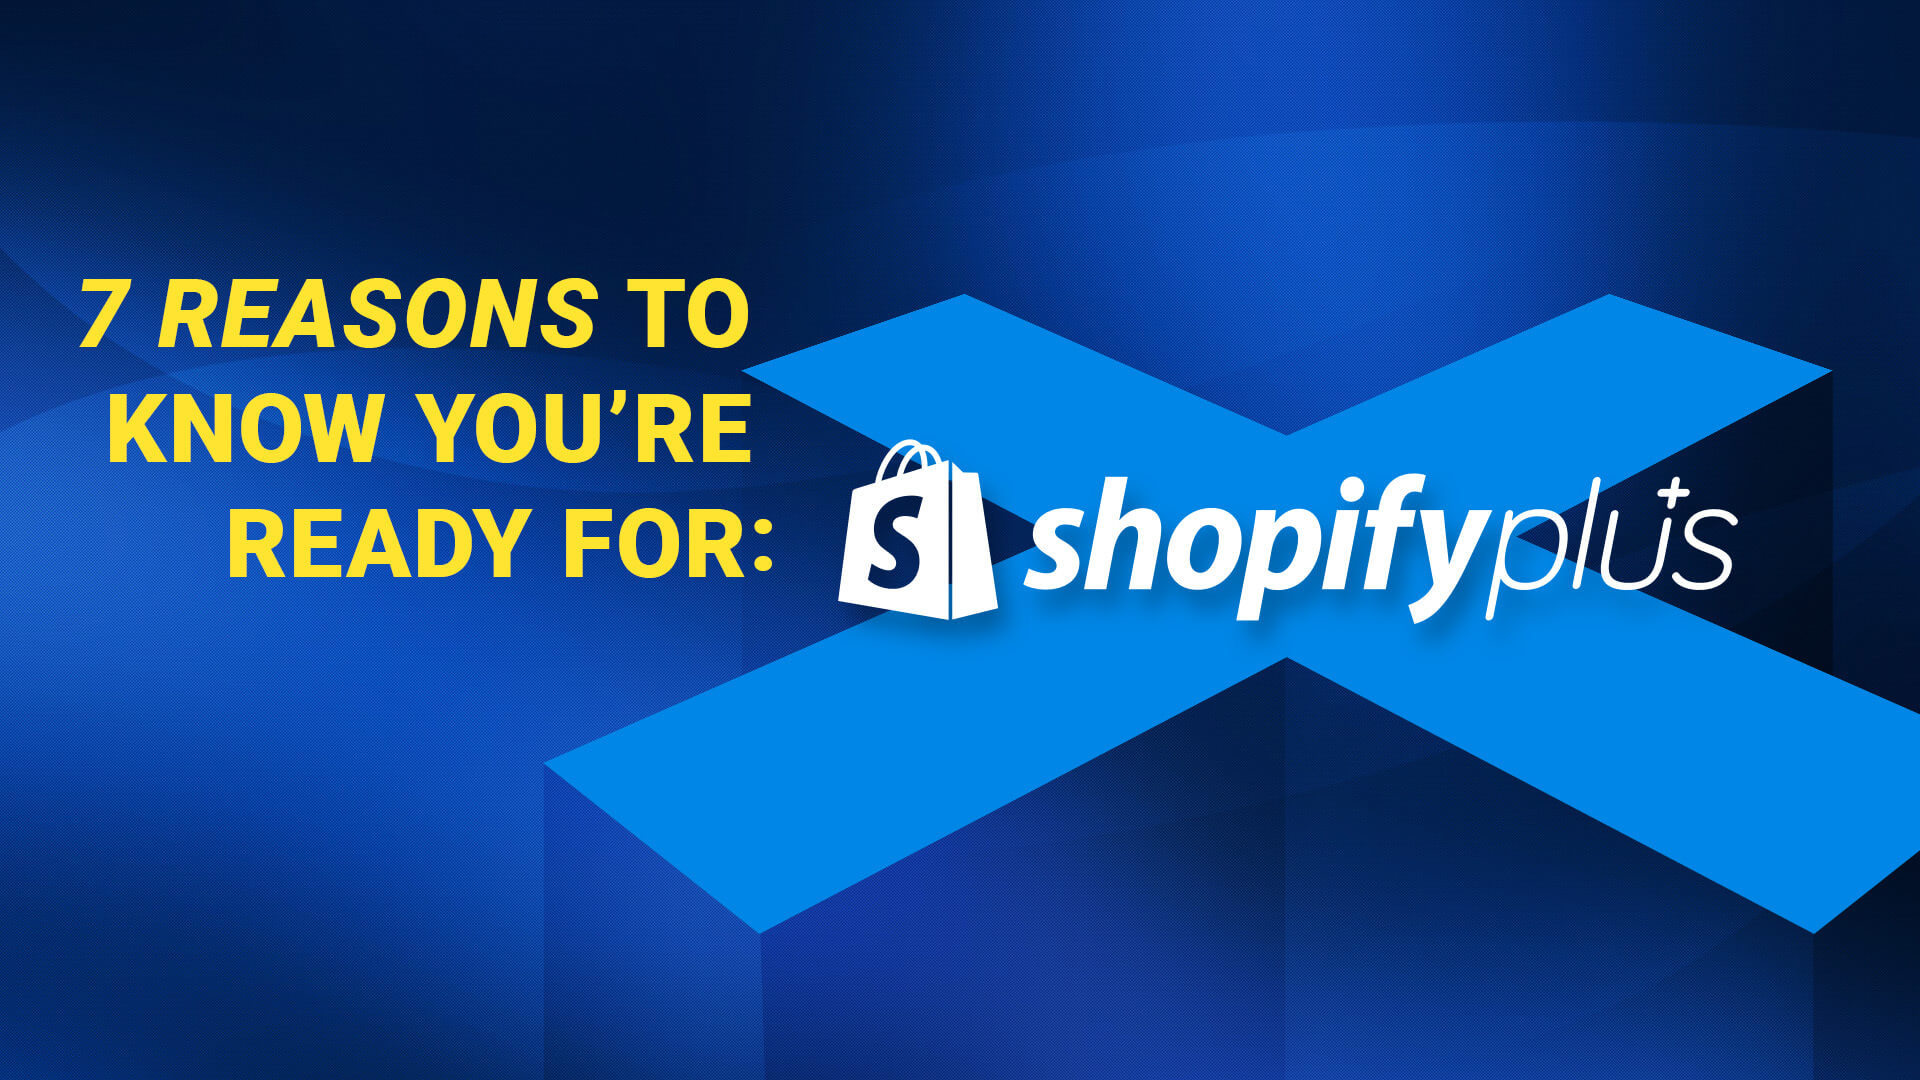 7 Ways to Know You're Ready for Shopify Plus